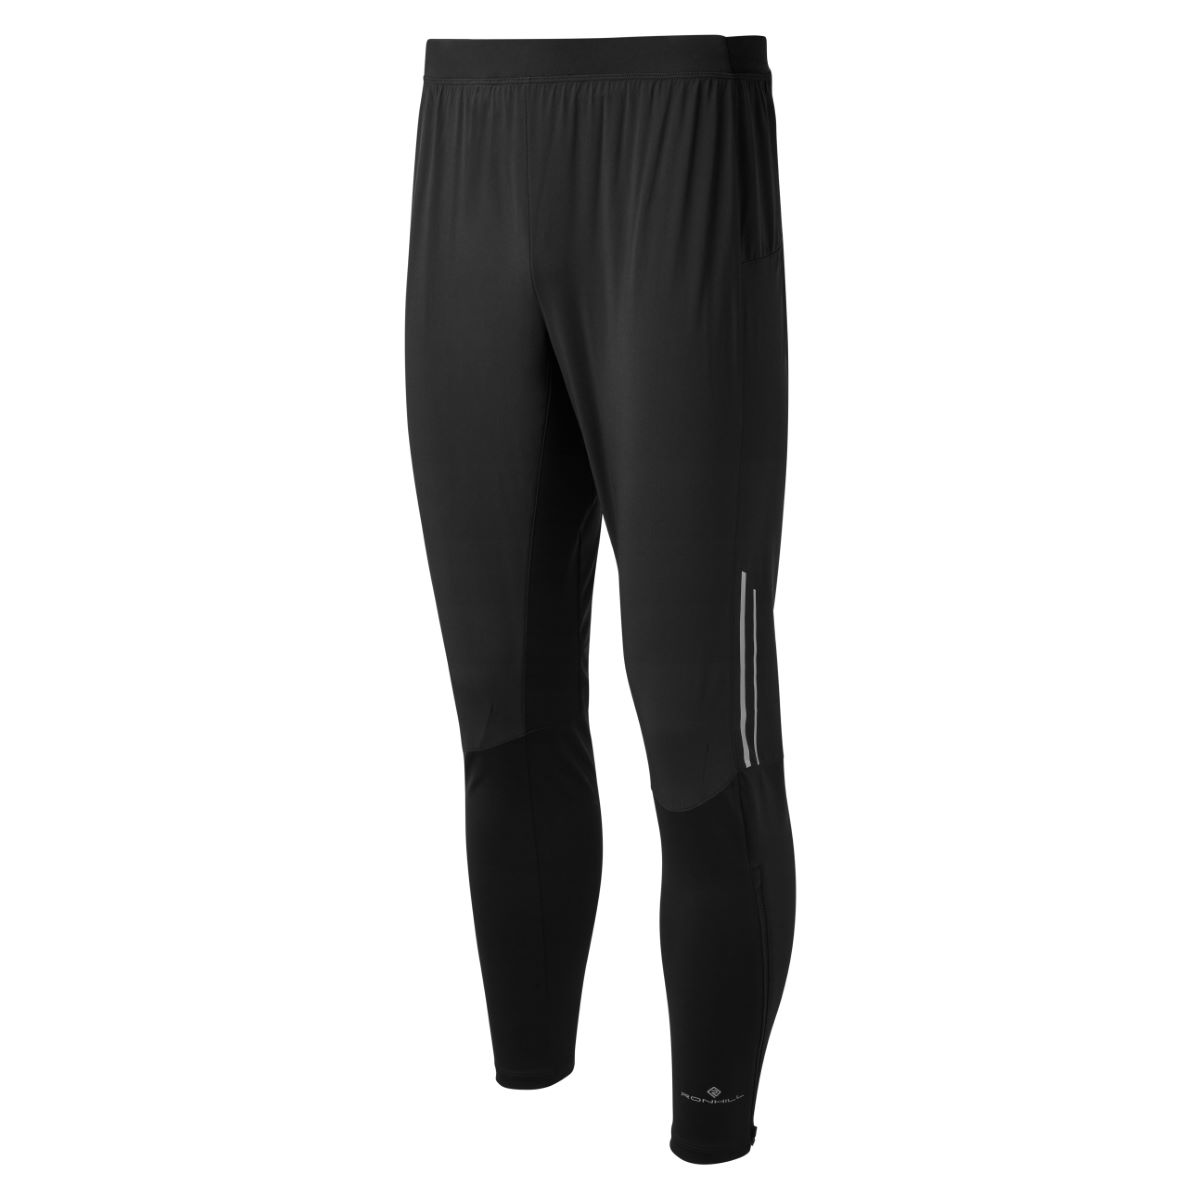 Ronhill Ronhill Stride Flex Pant   Tights